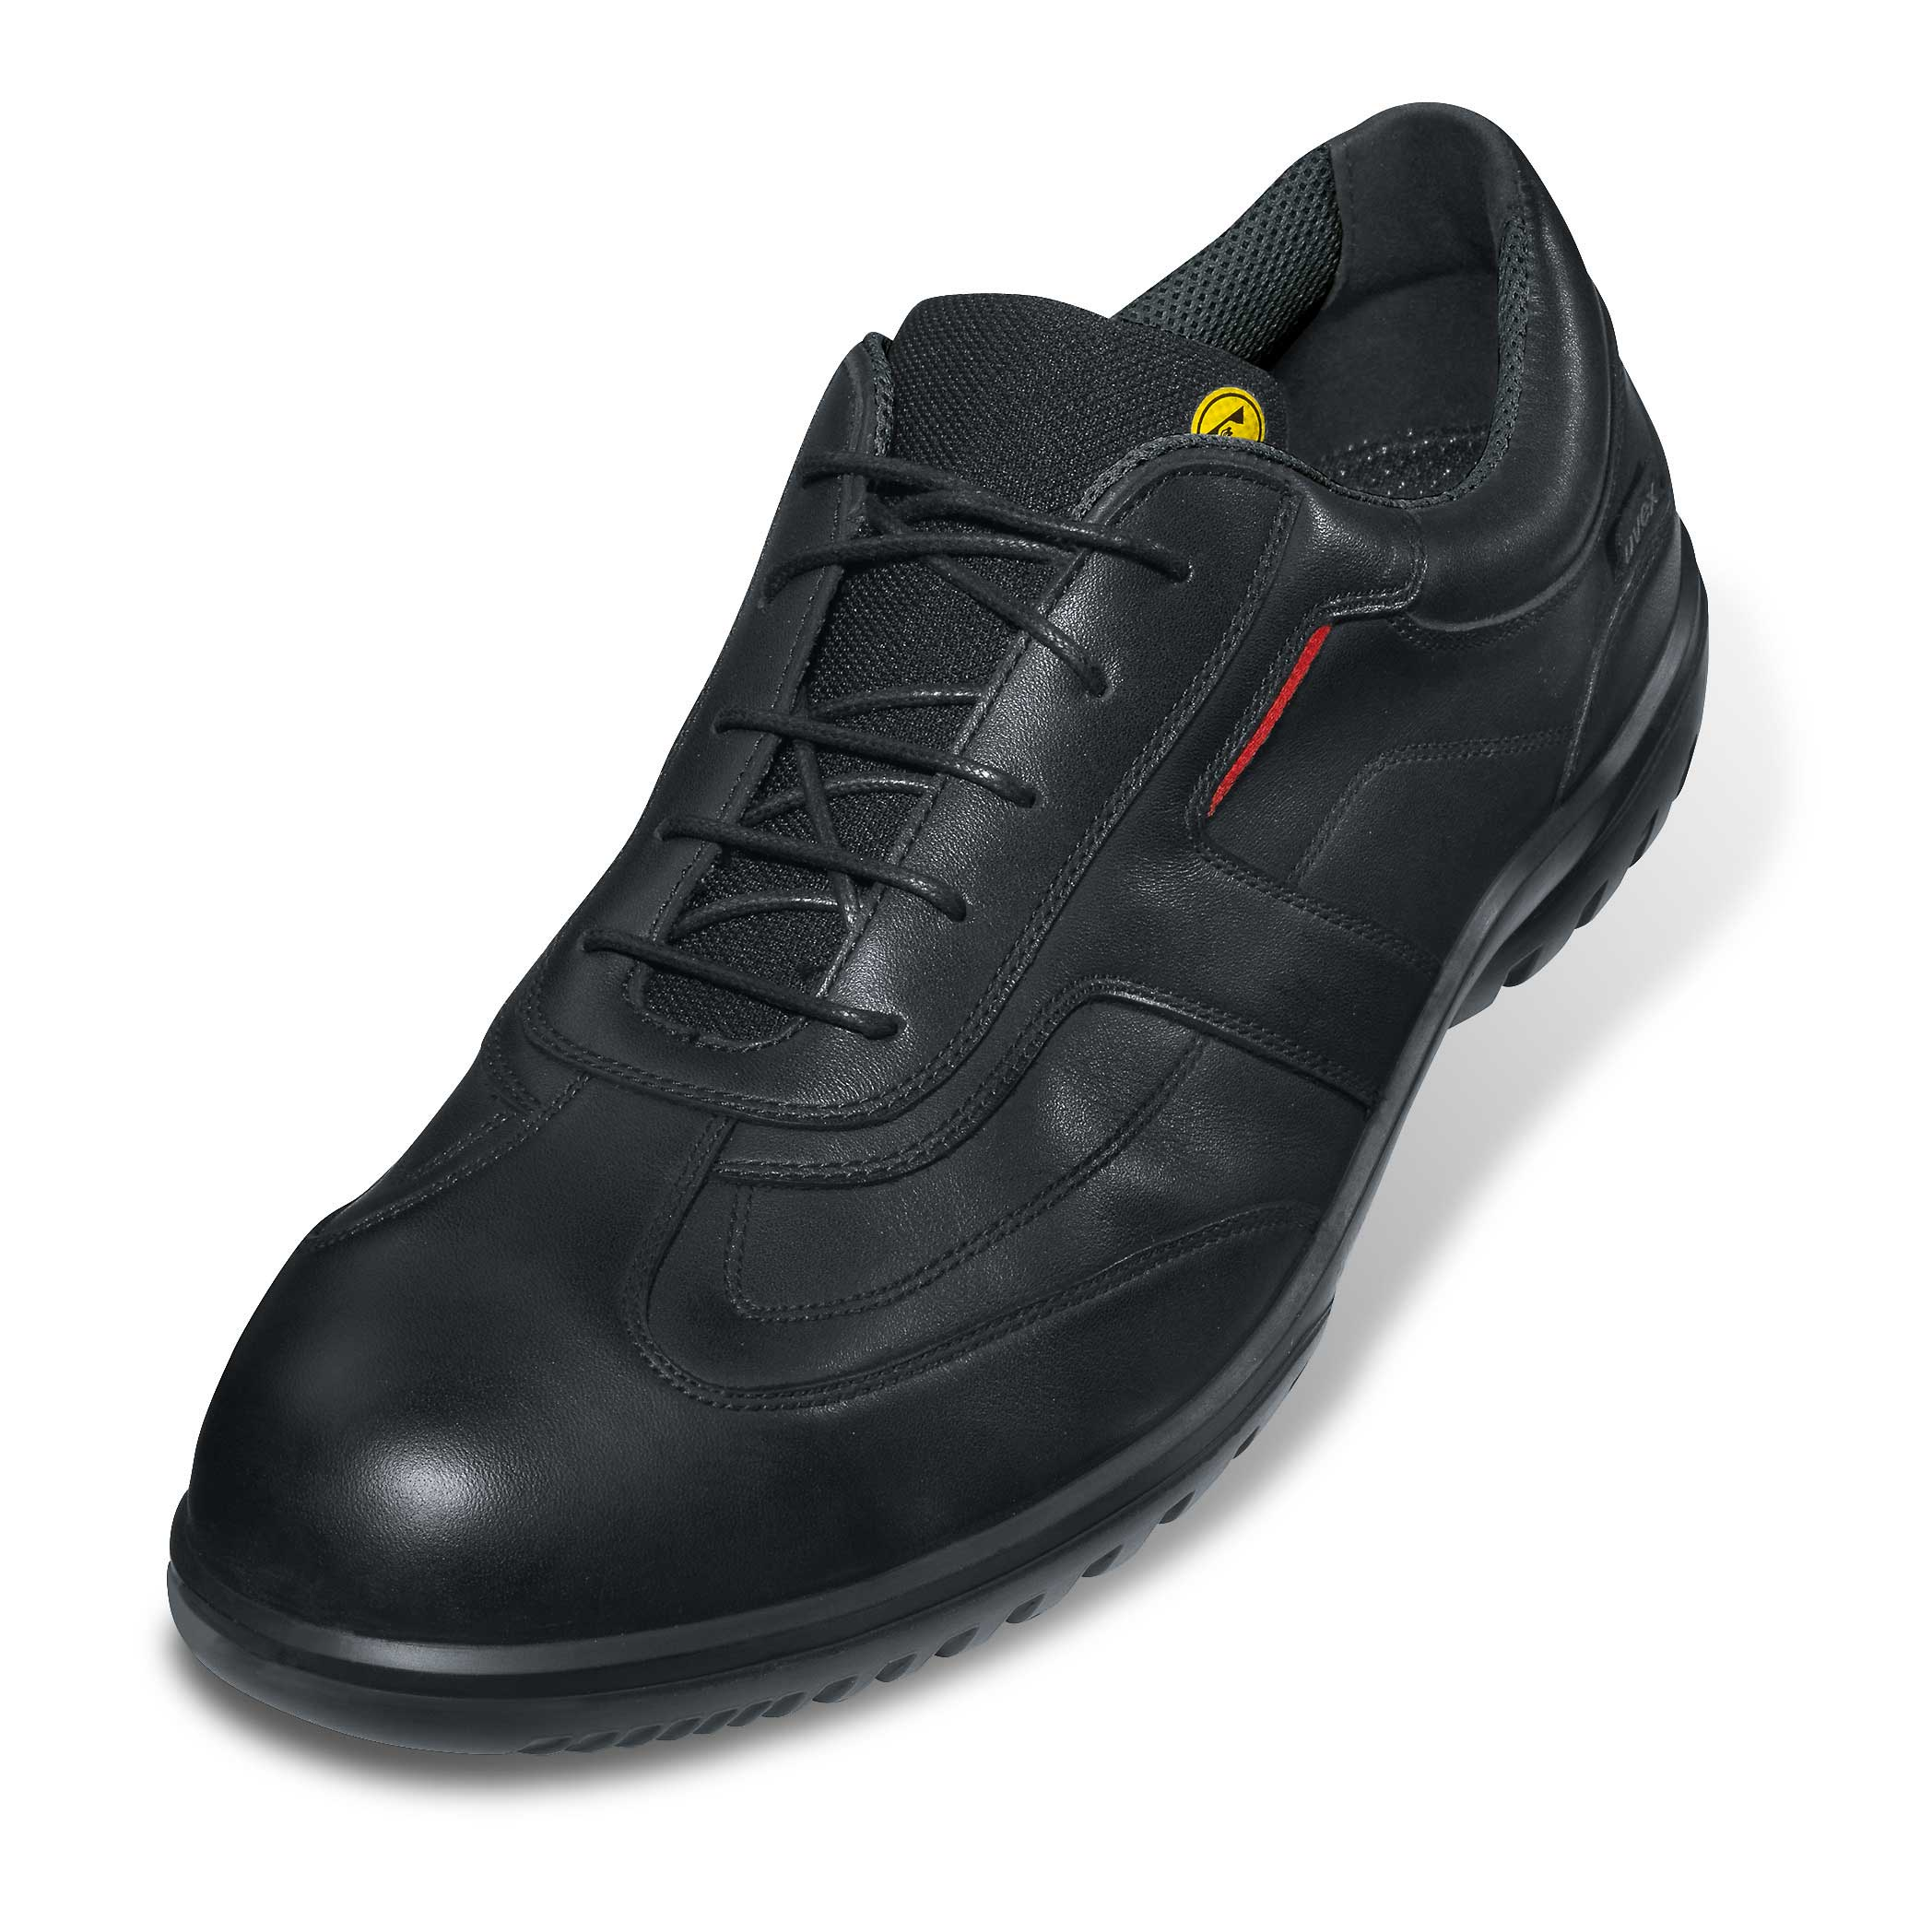 Uvex Safety Shoes Buy Online